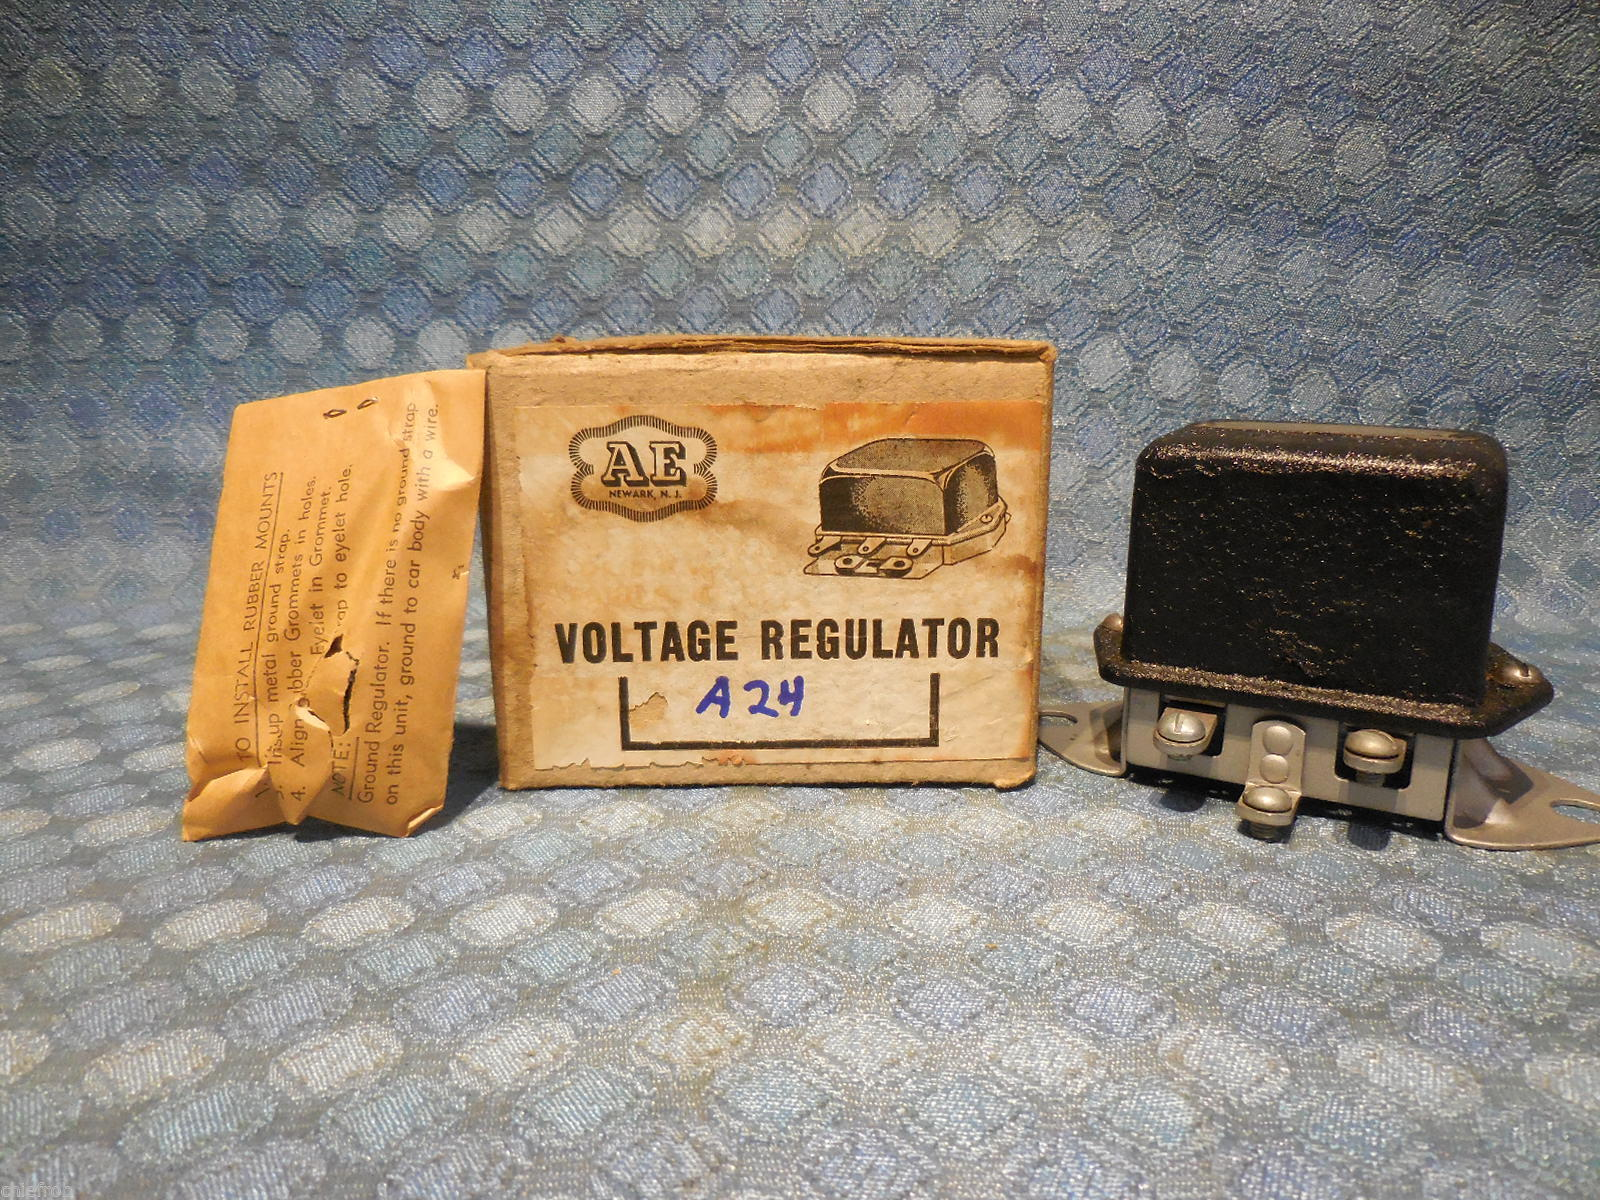 1939 Ford Voltage Regulator Wiring Electrical Diagrams Dodge 1938 Plymouth Fargo Nors Vrd 4002 B Header Panel